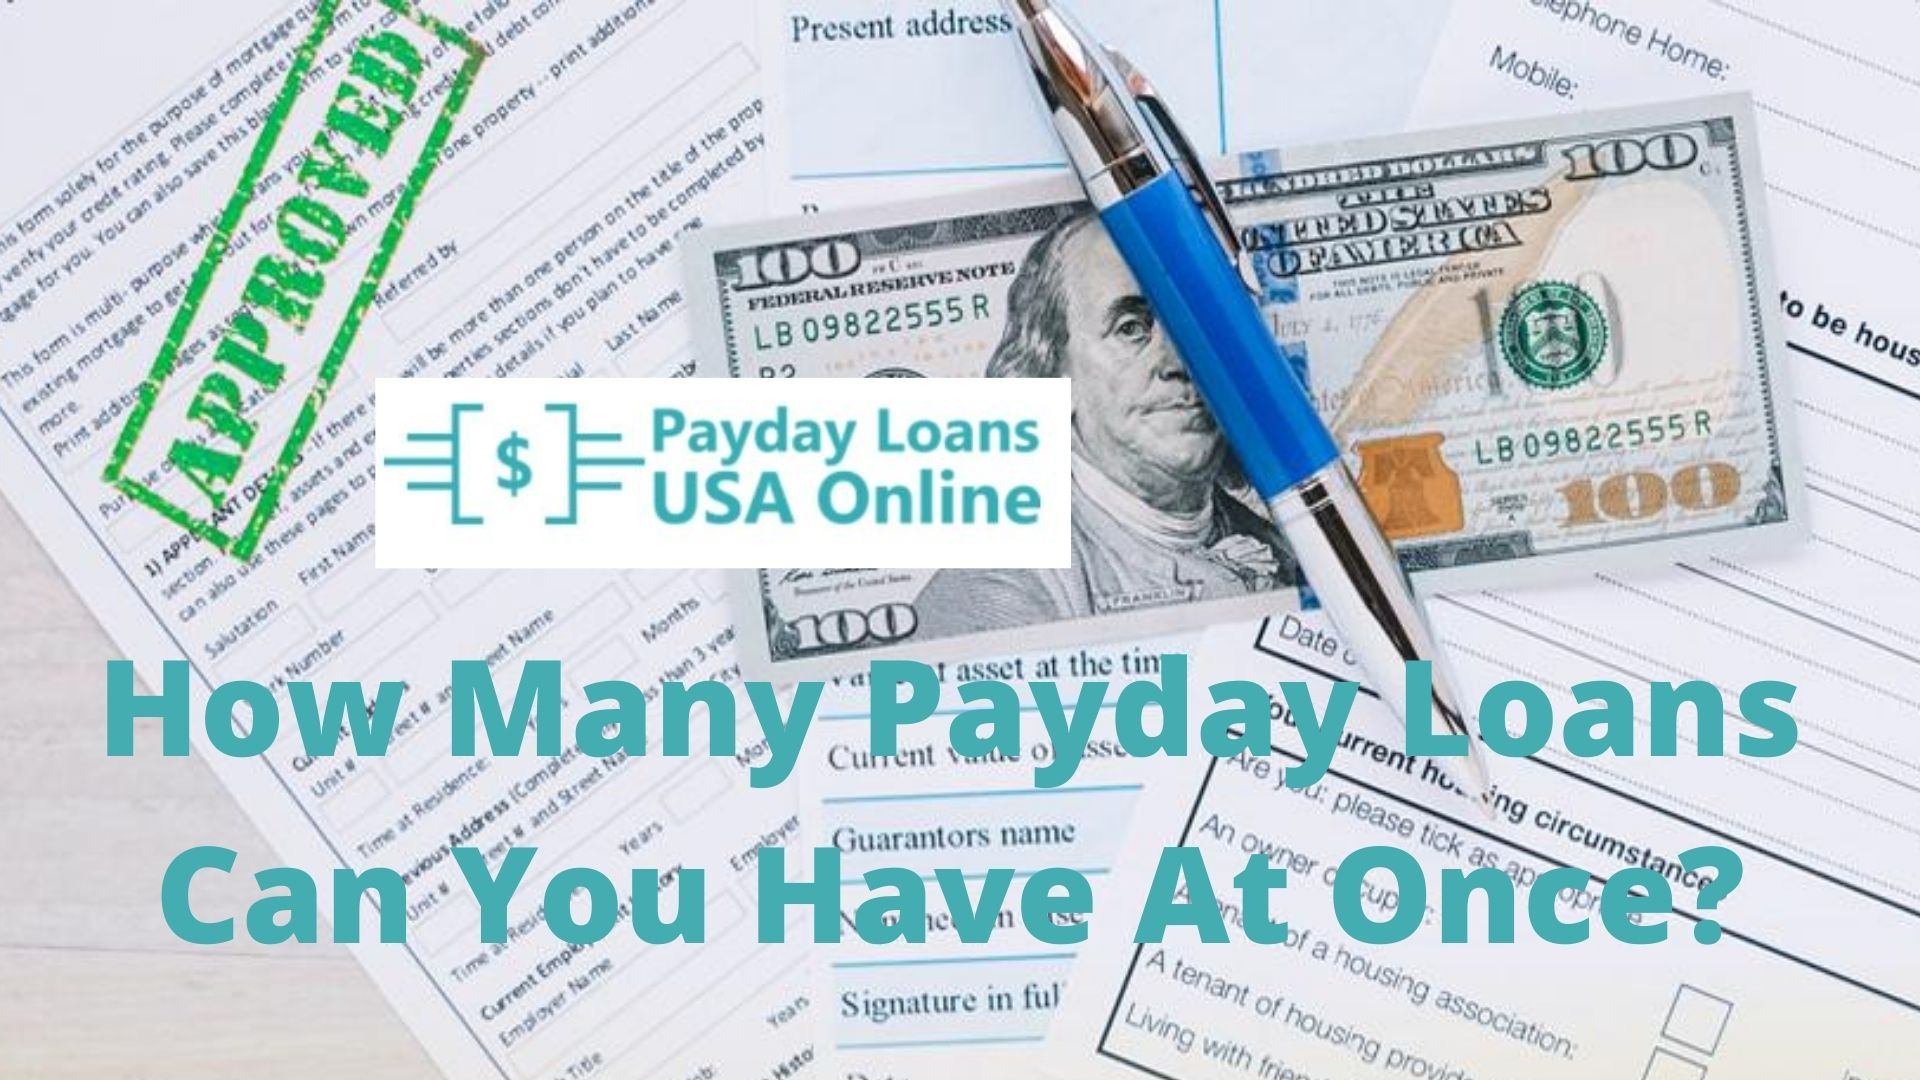 how many payday loans can you have